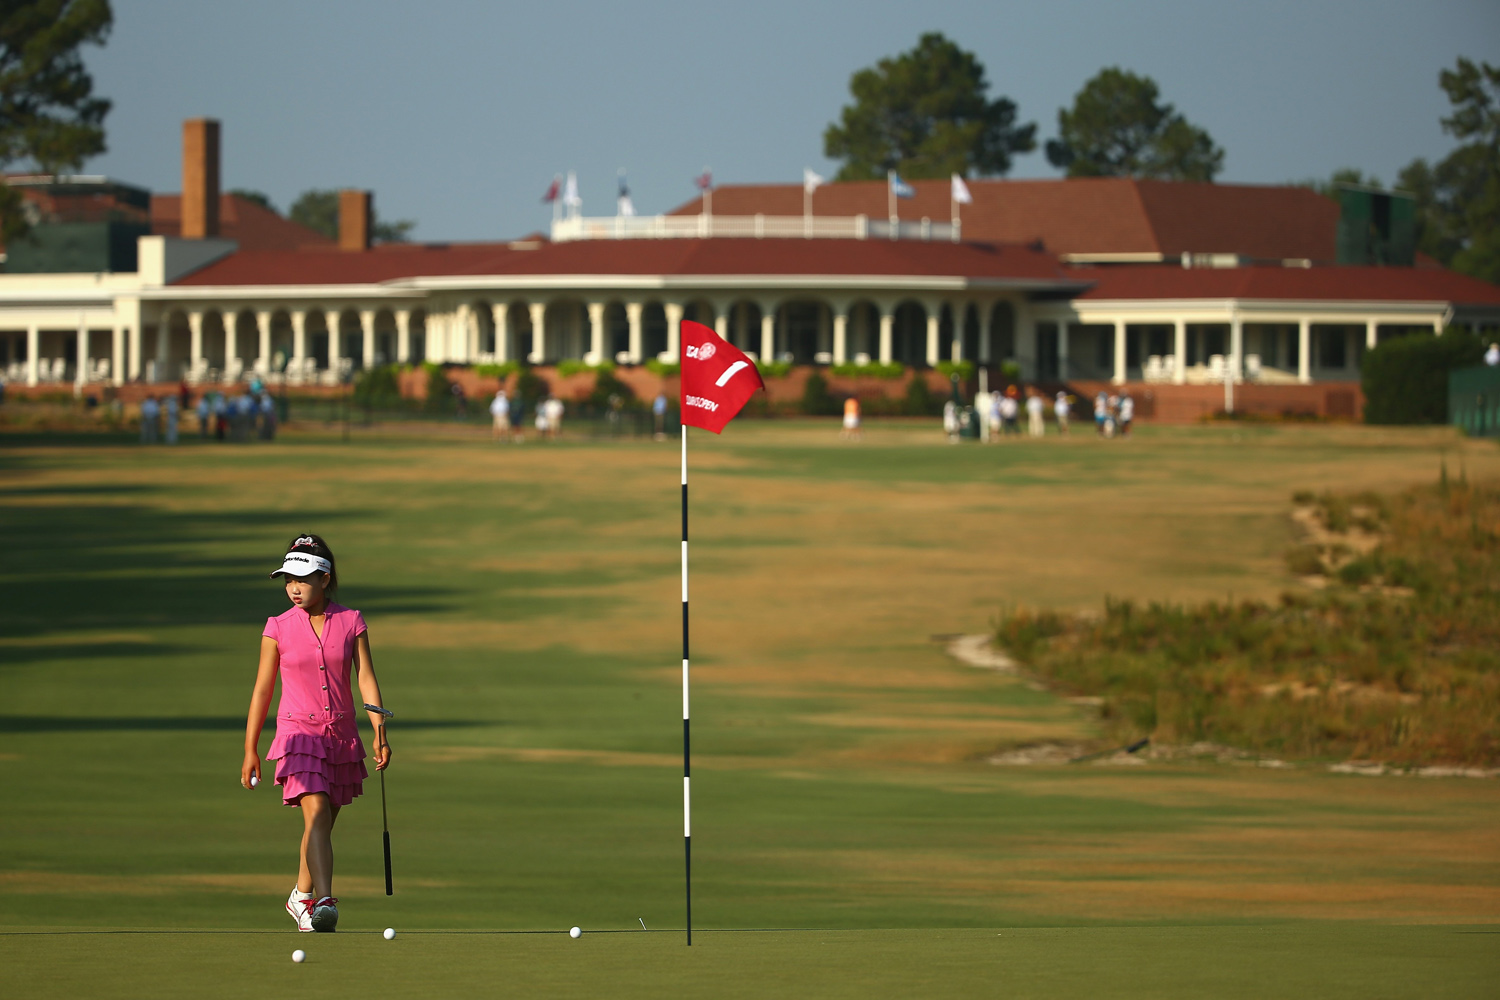 Jun. 18, 2014. Eleven-year old Amateur Lucy Li of the United States walks on the first green during a practice round prior to the start of the 69th U.S. Women's Open at Pinehurst Resort and Country Club in Pinehurst, North Carolina.